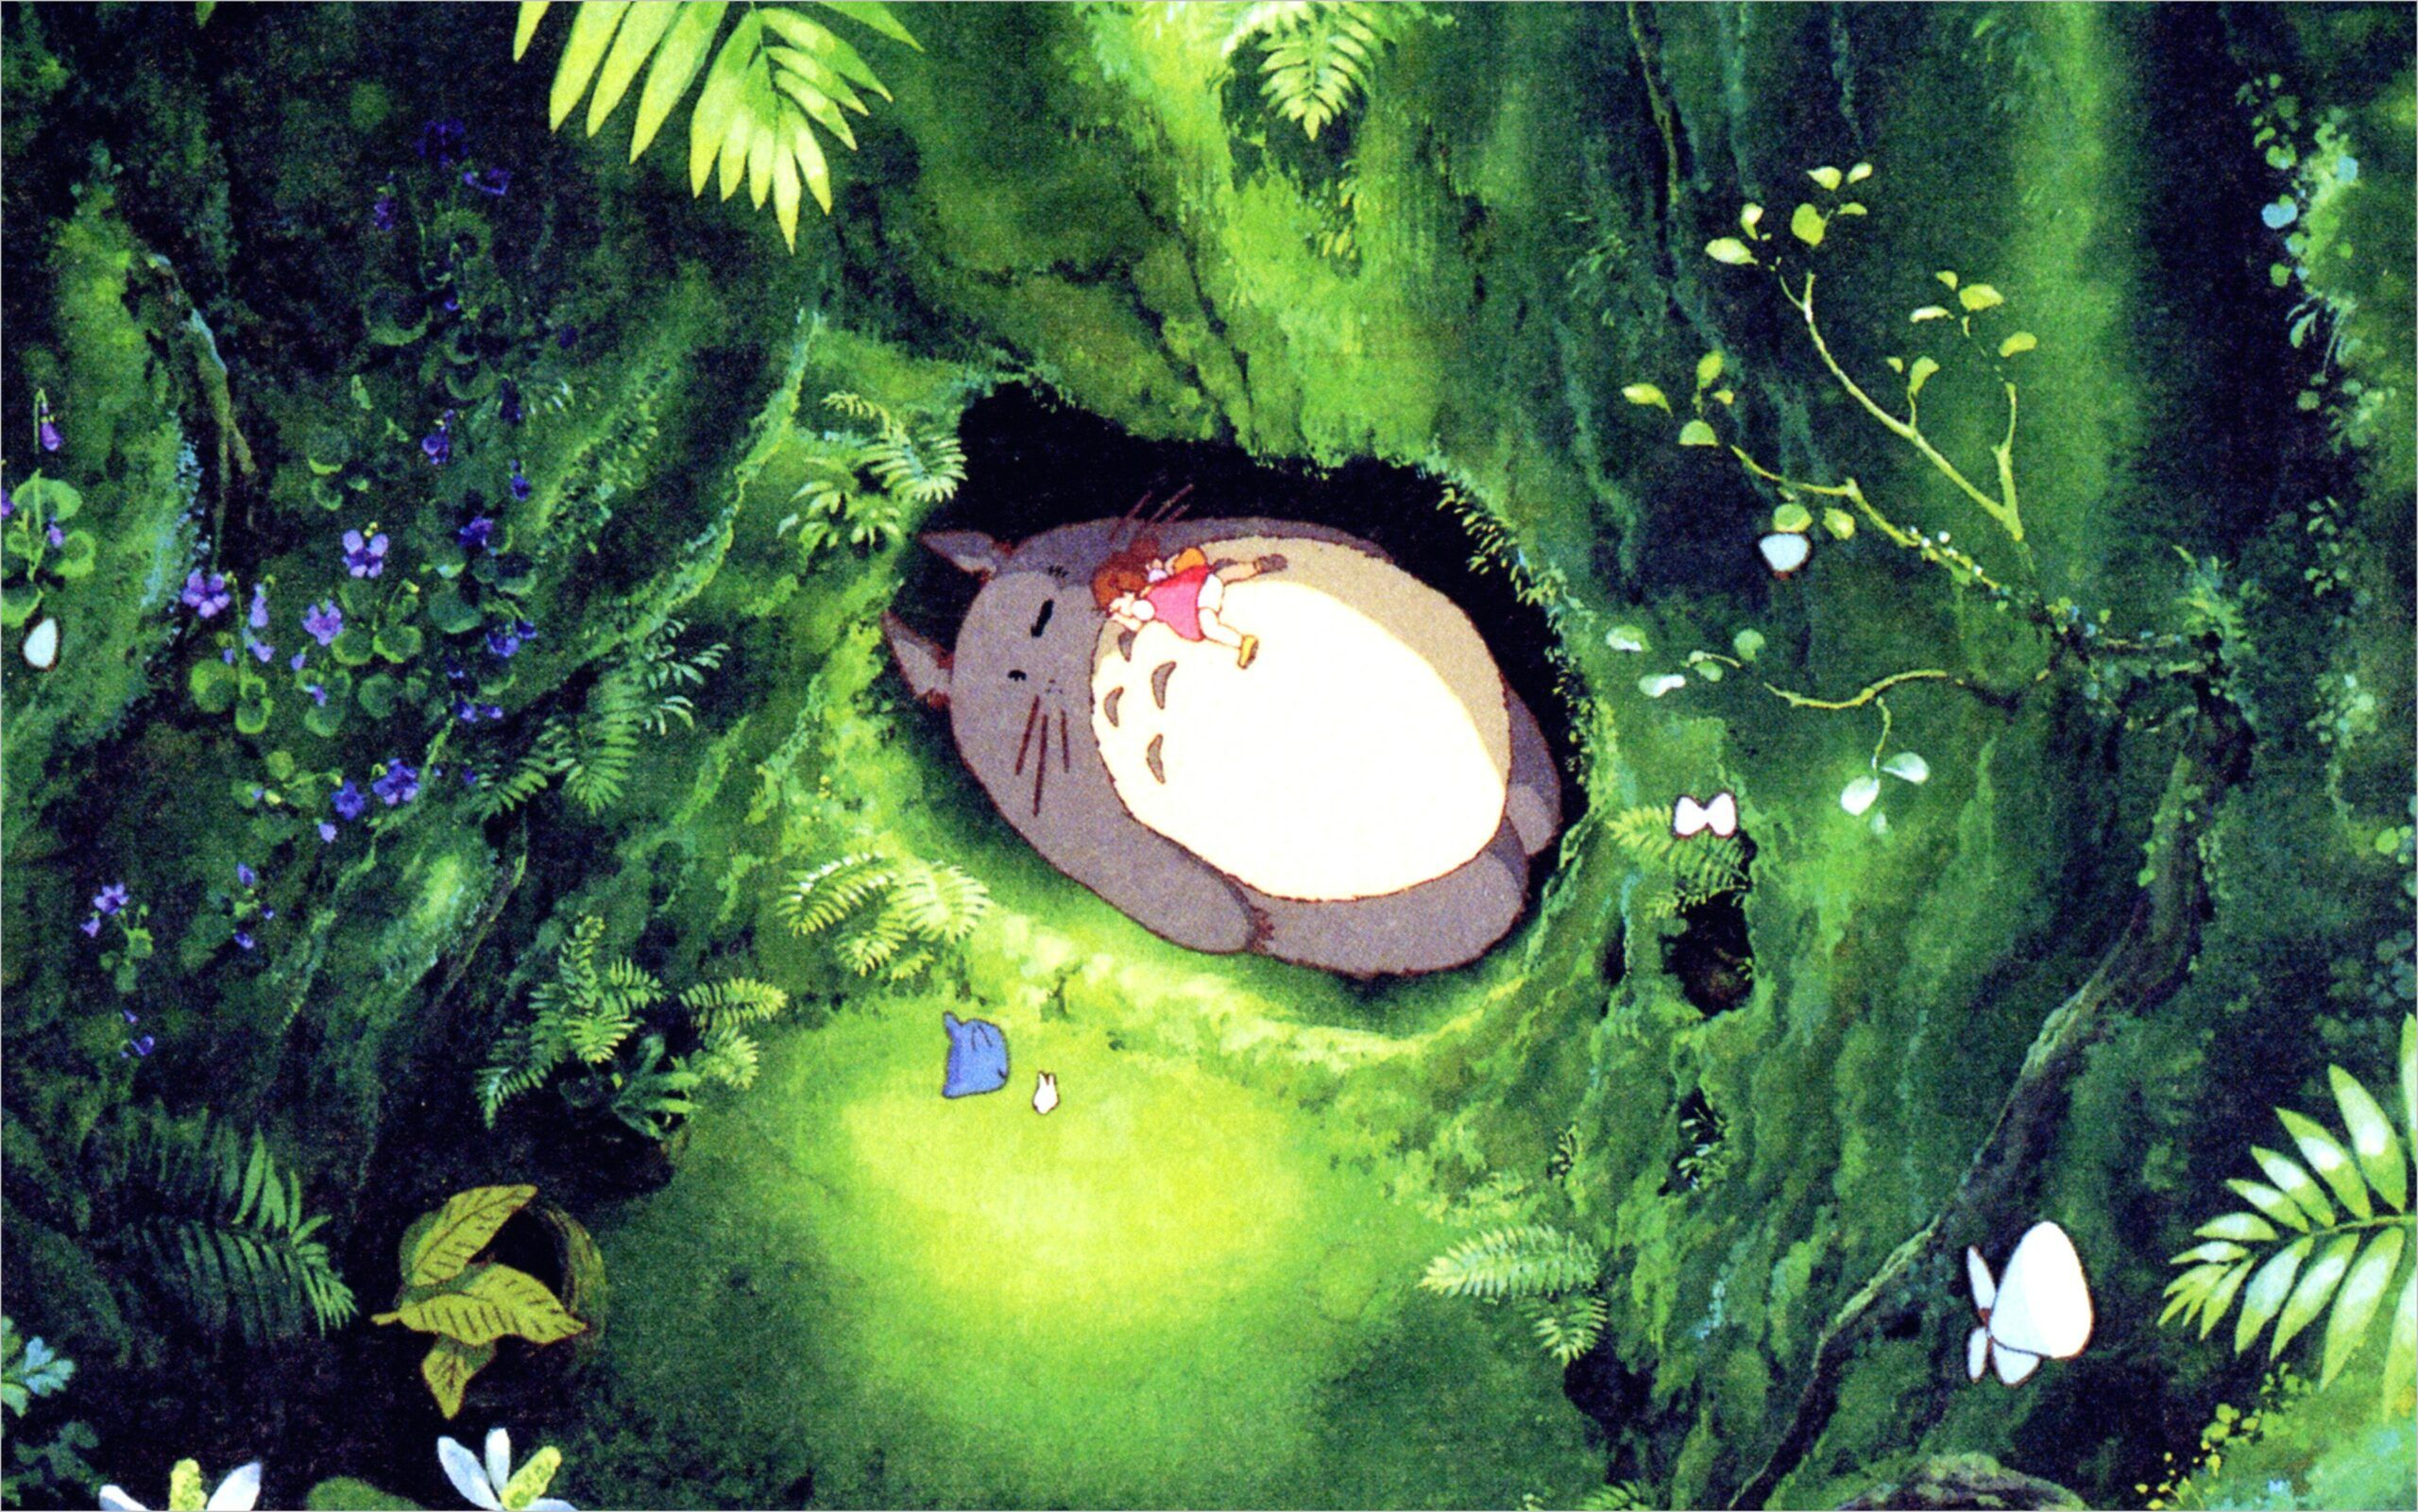 Anime Wallpaper 4k Greeb In 2020 Totoro Art Anime Wallpaper Totoro